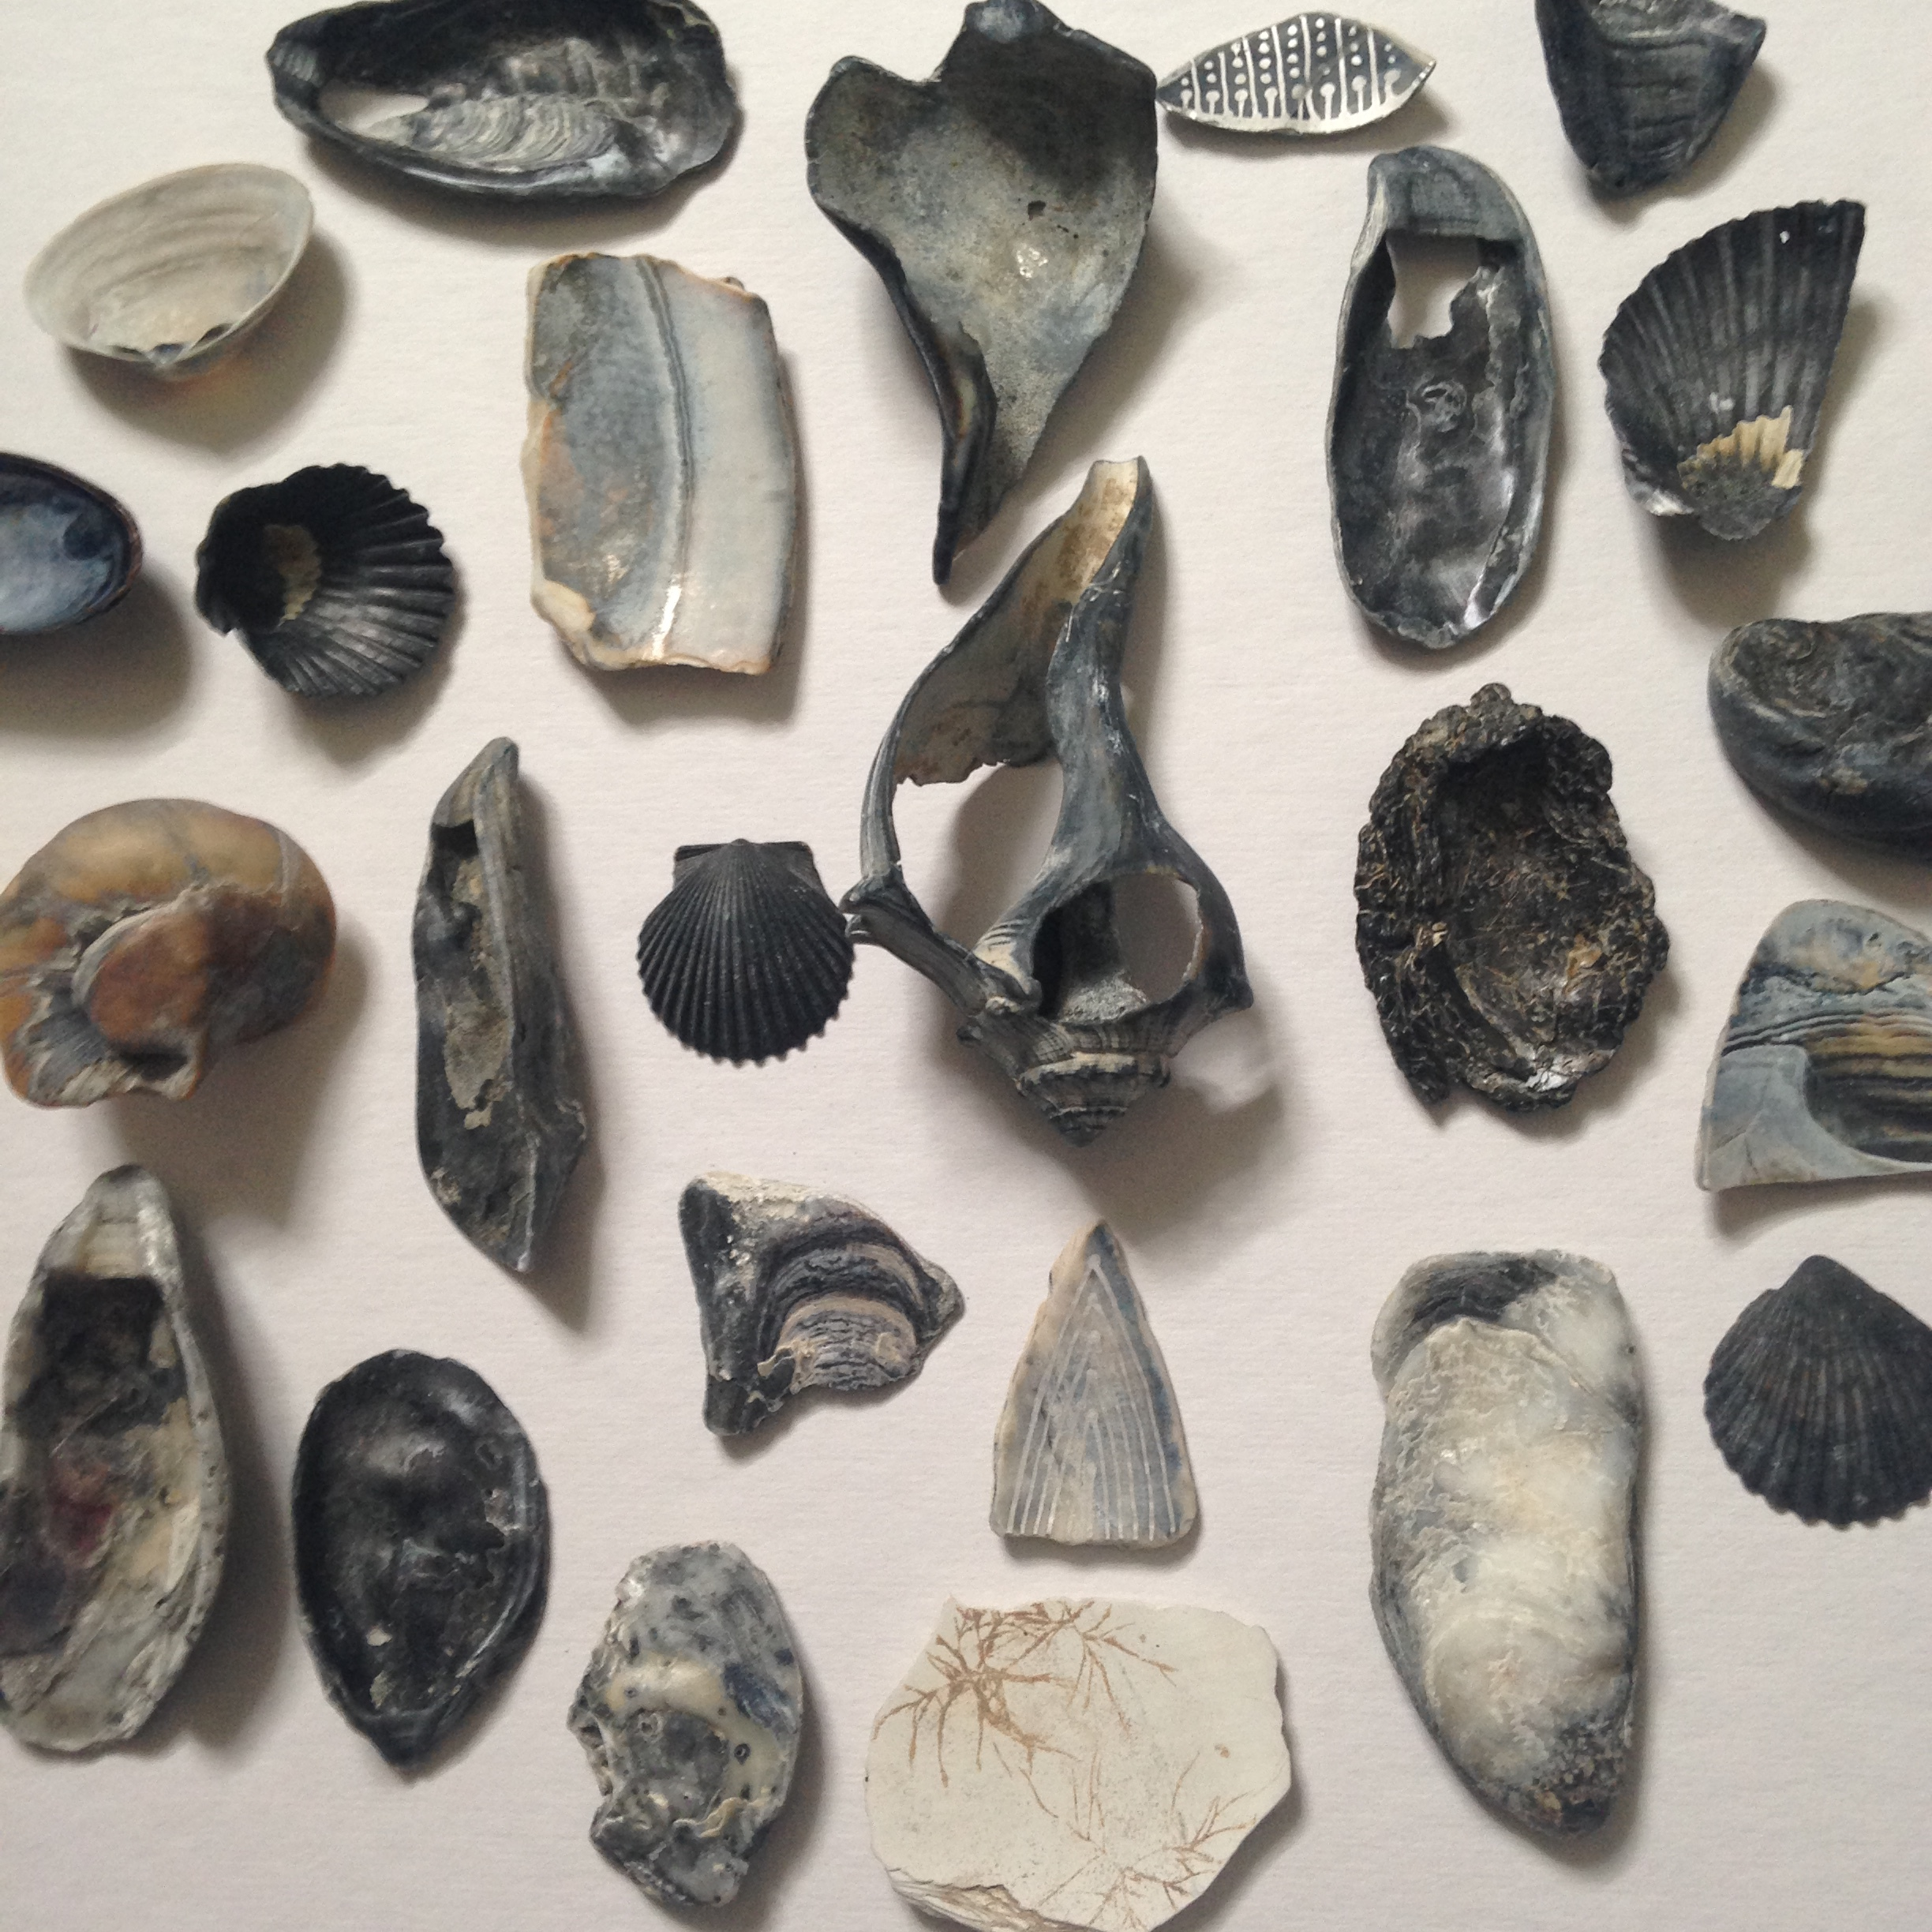 This is maybe a quarter of all the shells I picked up! It got a bit ridiculous and I had to make myself stop picking up shells.